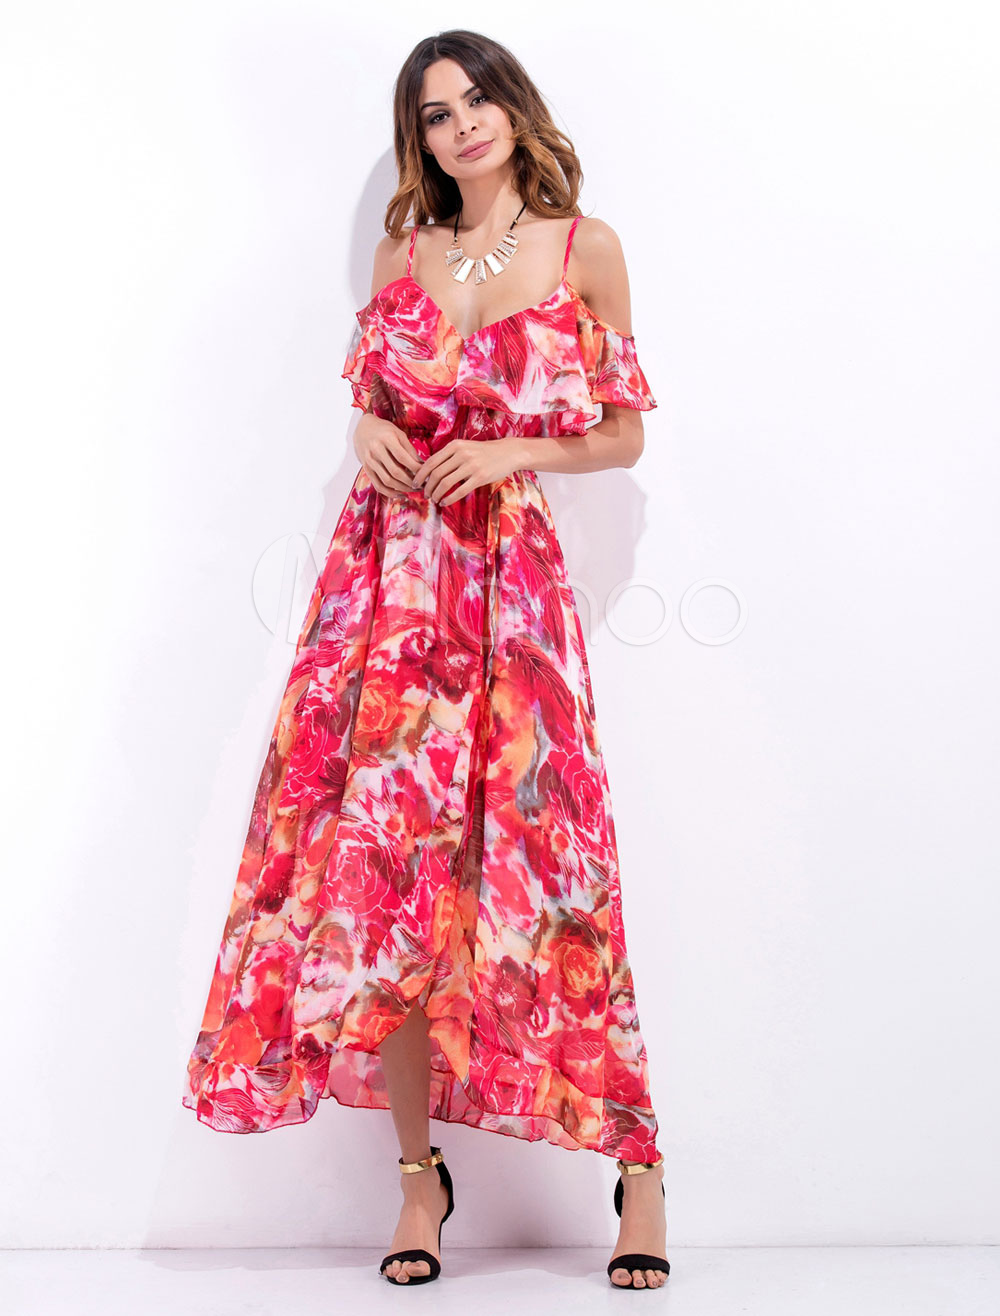 8292e0c41193 ... Spaghetti Straps Ruffle Floral Printed Long Dress For Women-No. 1.  40%OFF. Color Red